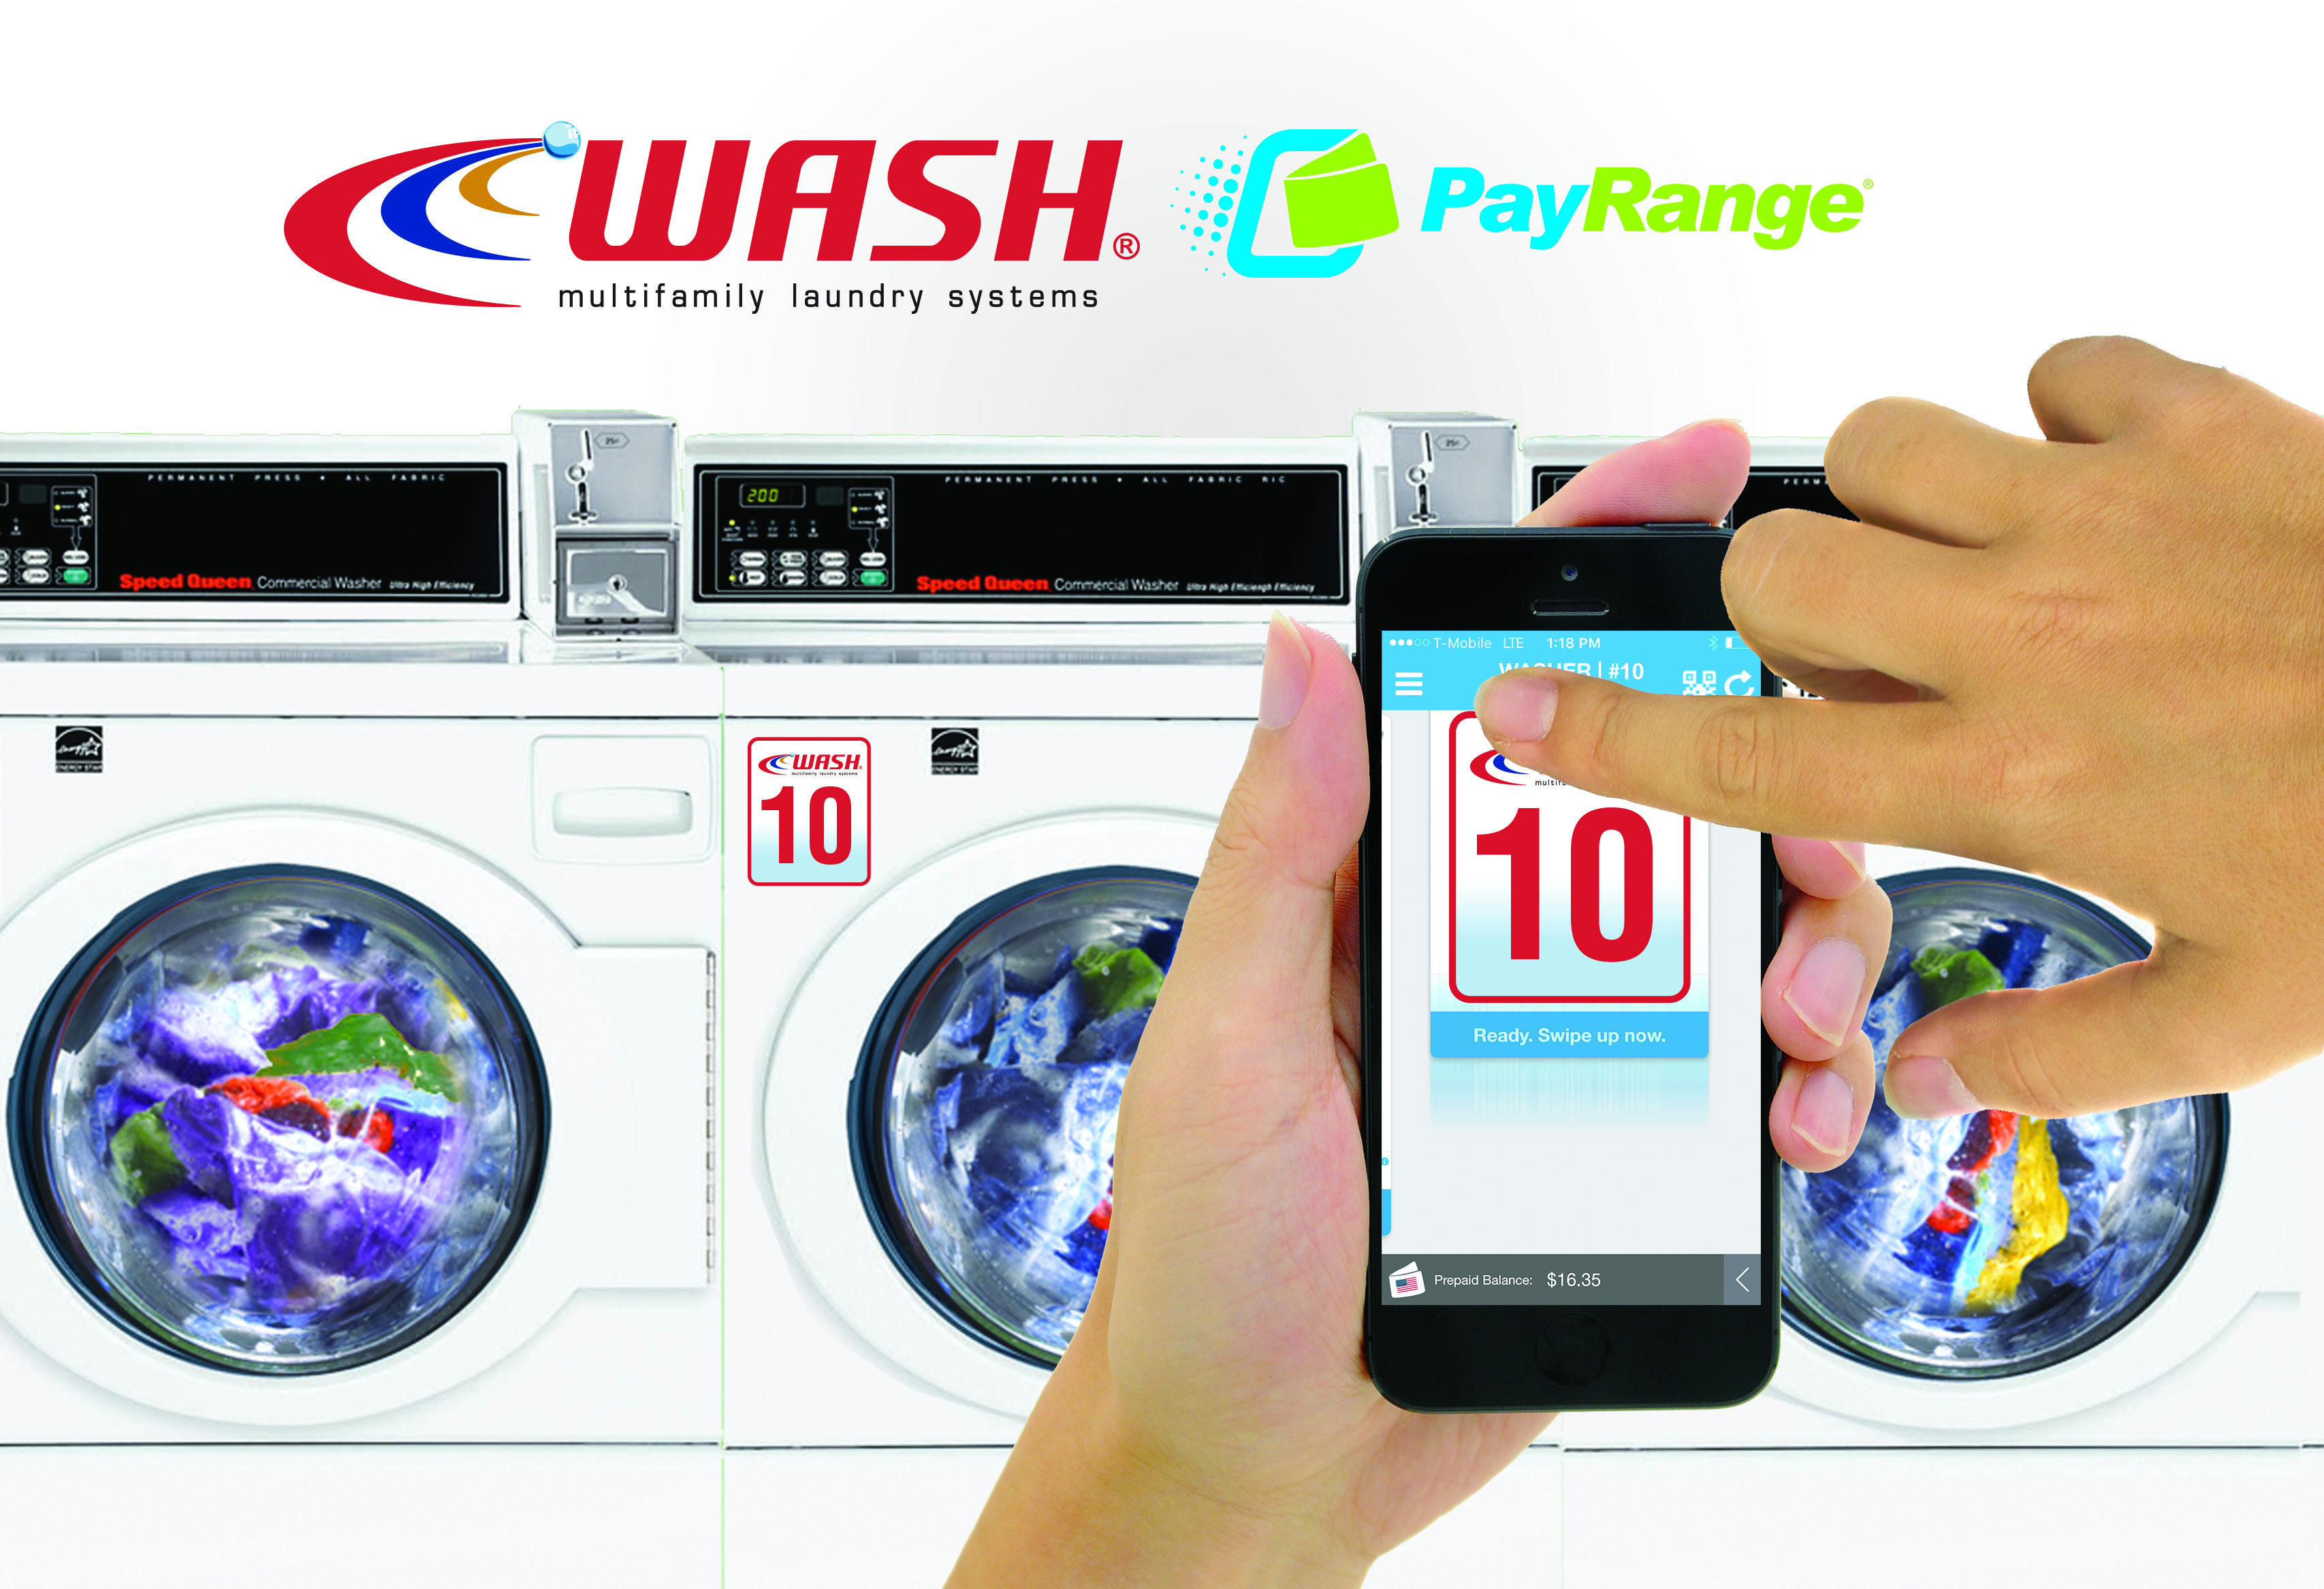 Wash Upgrades Common Area Laundry Rooms With Payrange Mobile